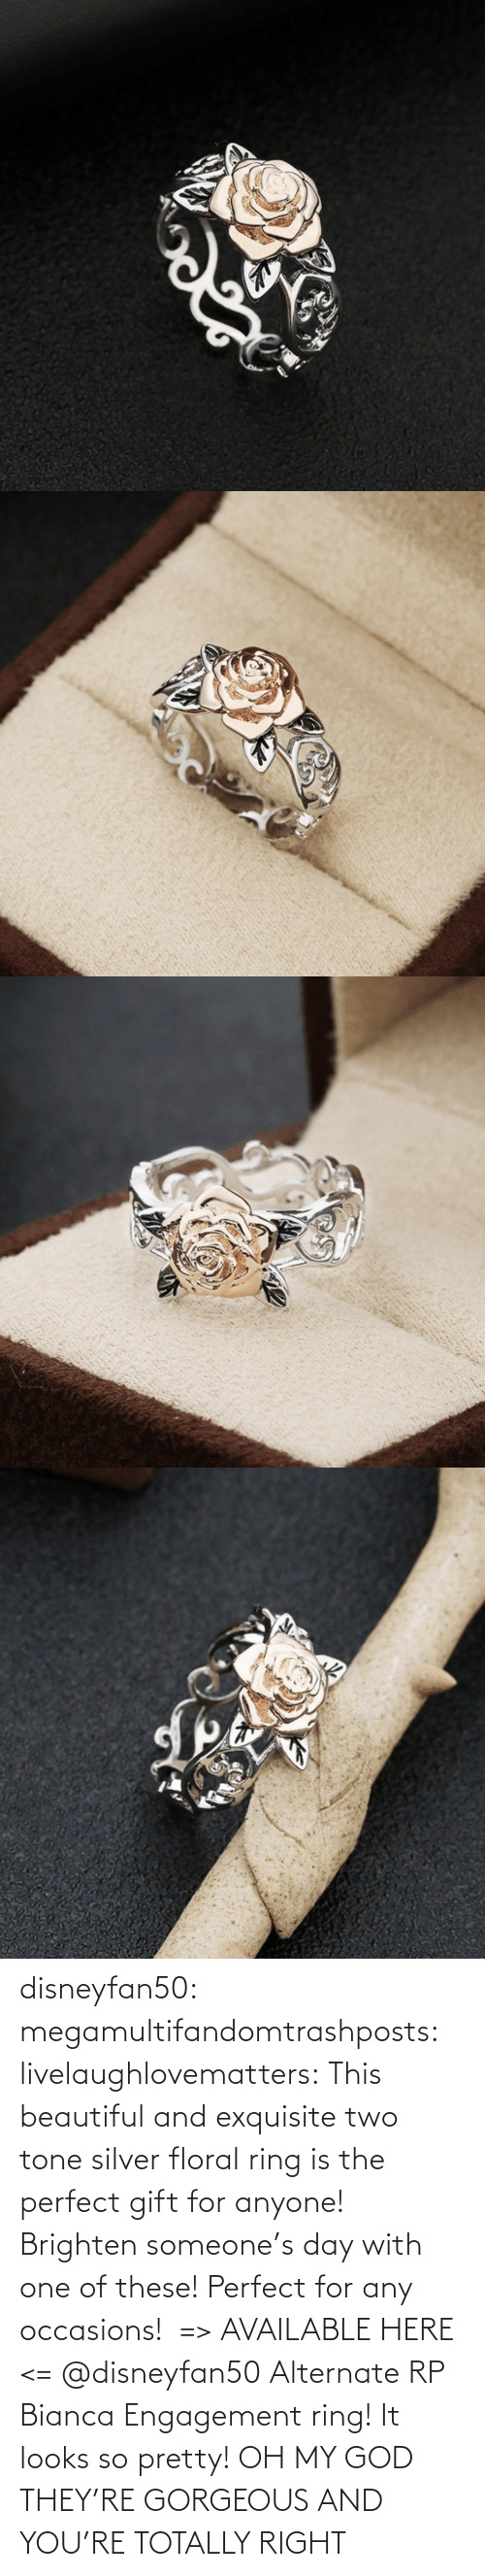 they: disneyfan50: megamultifandomtrashposts:  livelaughlovematters:  This beautiful and exquisite two tone silver floral ring is the perfect gift for anyone! Brighten someone's day with one of these! Perfect for any occasions!  => AVAILABLE HERE <=    @disneyfan50 Alternate RP Bianca Engagement ring! It looks so pretty!  OH MY GOD THEY'RE GORGEOUS AND YOU'RE TOTALLY RIGHT